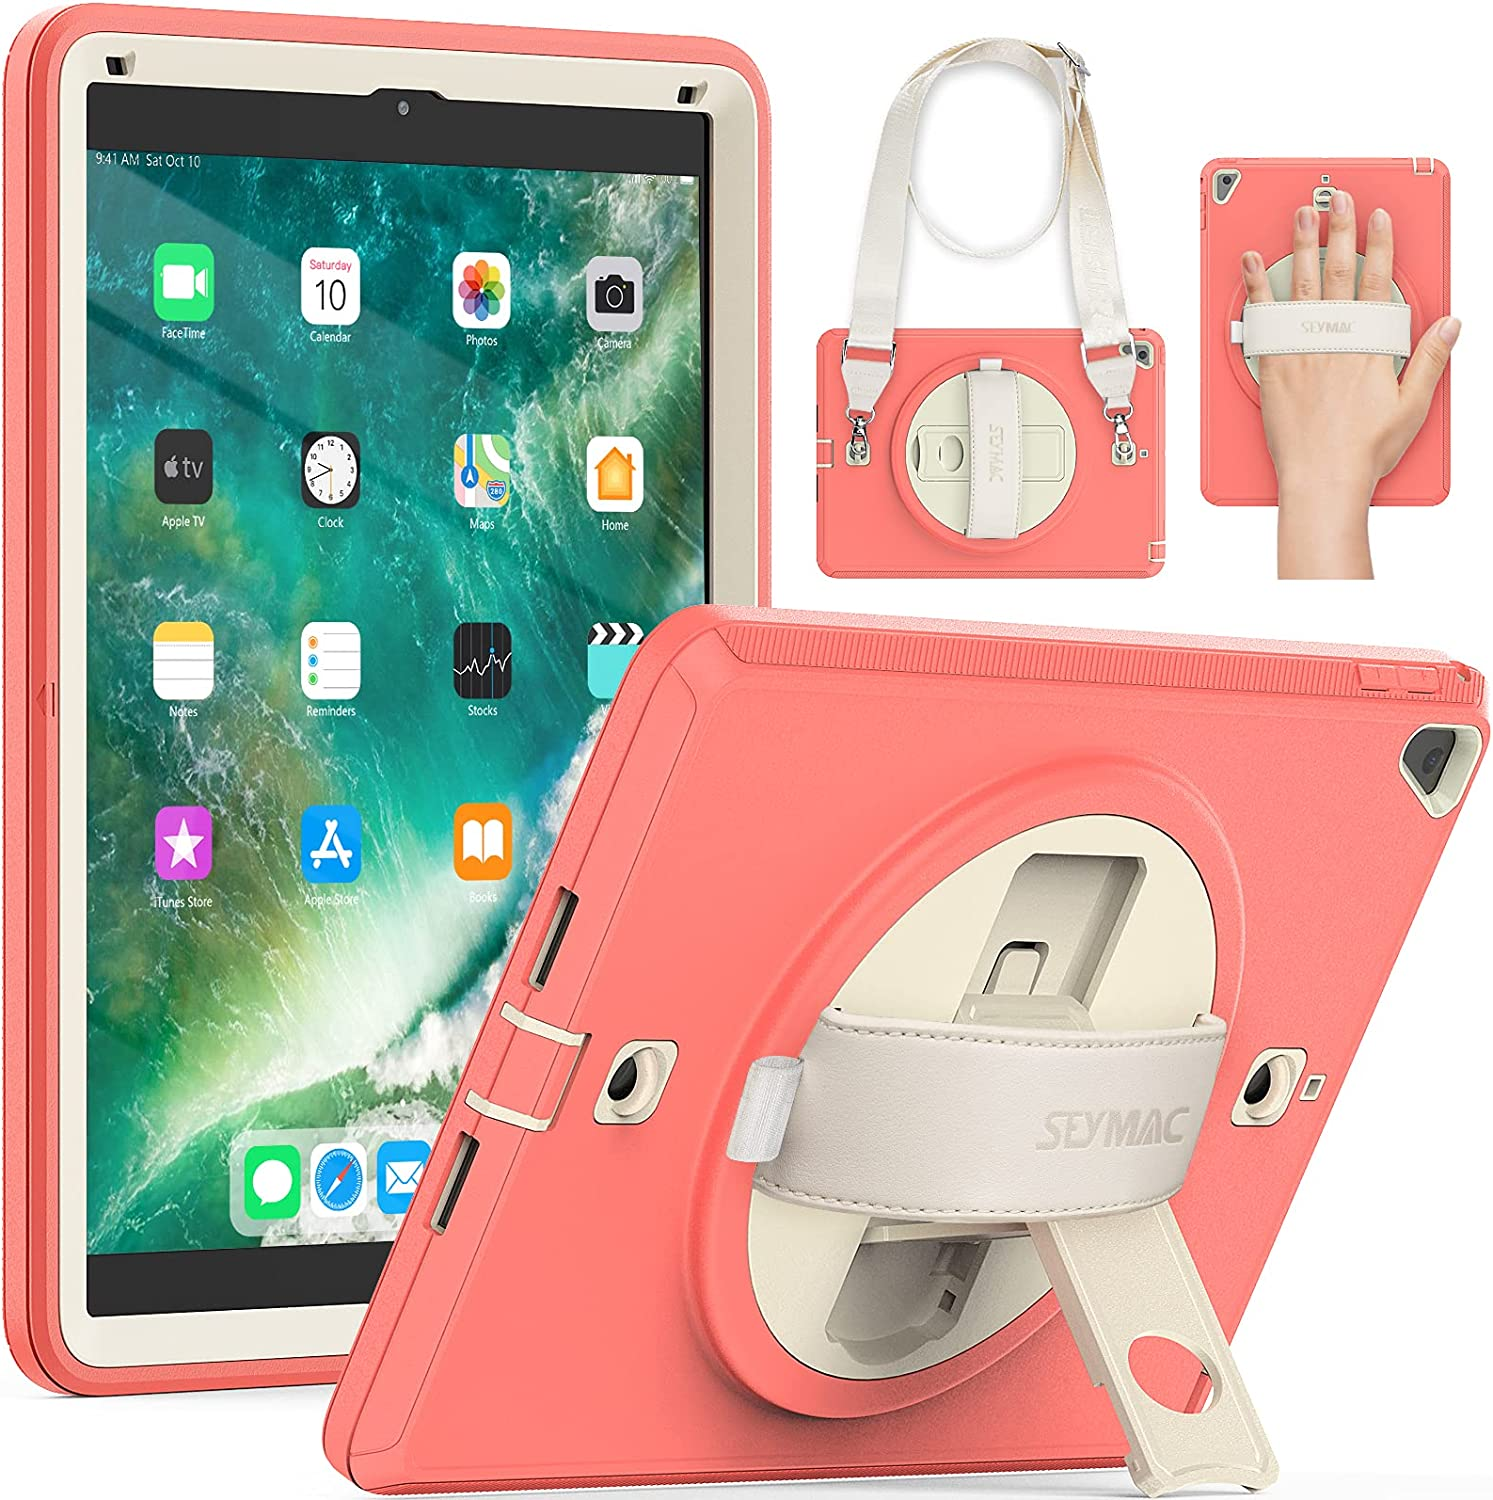 iPad 9.7 Case, iPad 5th/6th Gen Case SEYMAC Heavy Duty Rugged Shockproof iPad Air 2 Case with Screen Protector Full Protection iPad Pro 9.7 Case with Rotatable Stand & Hand Strap Beige/Light Orange